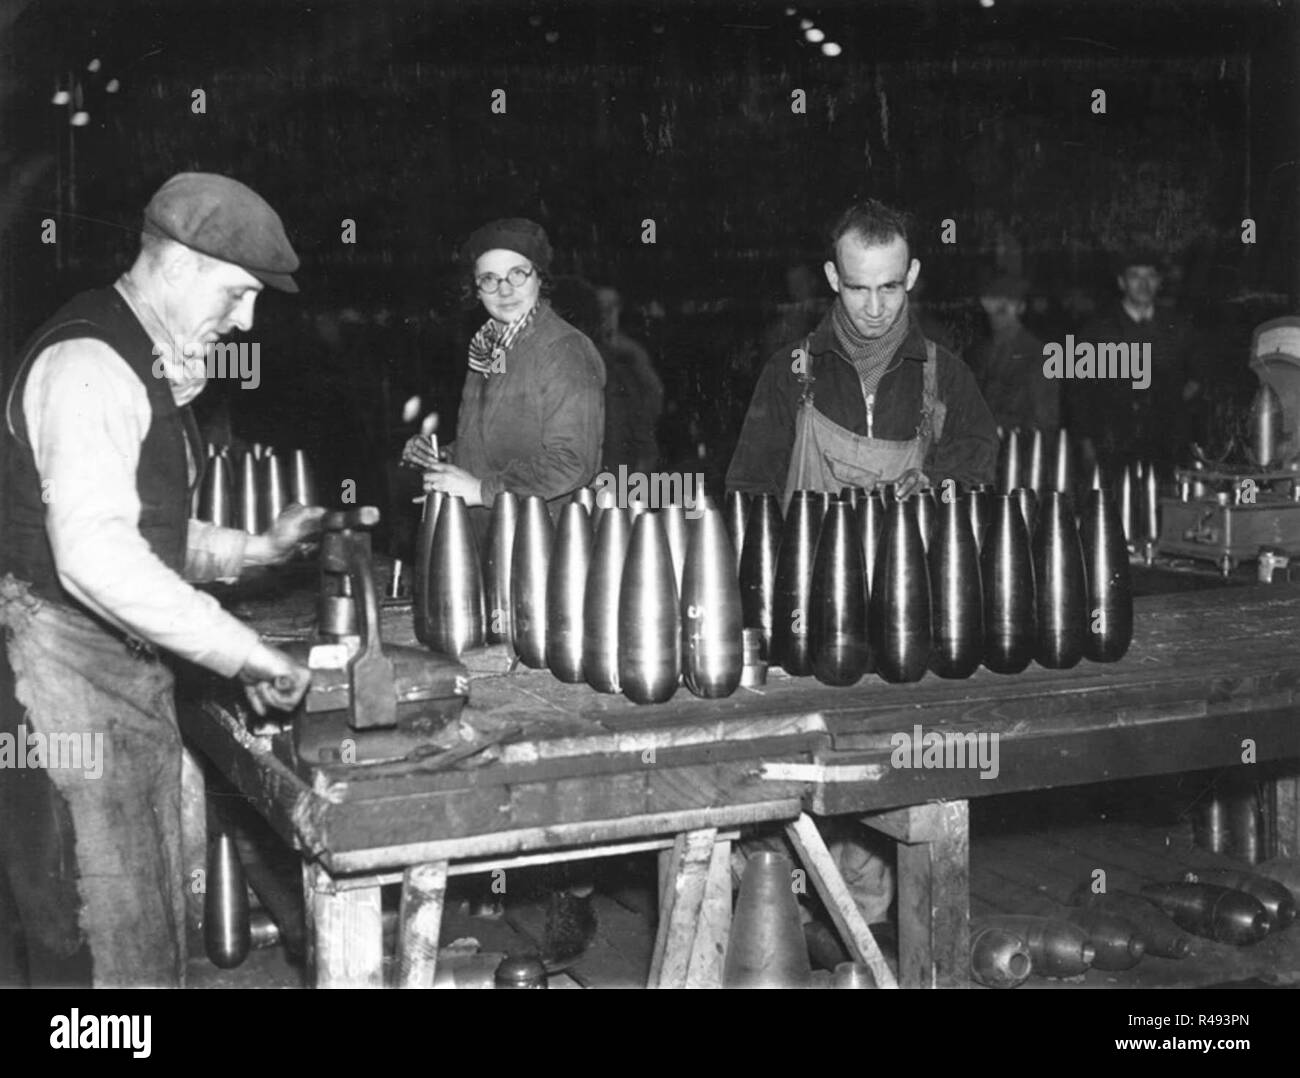 Gauging 4.2 inch trench mortar bombs in the Shell Department, Elswick Works, Newcastle upon Tyne, 2 December 1942 - Stock Image